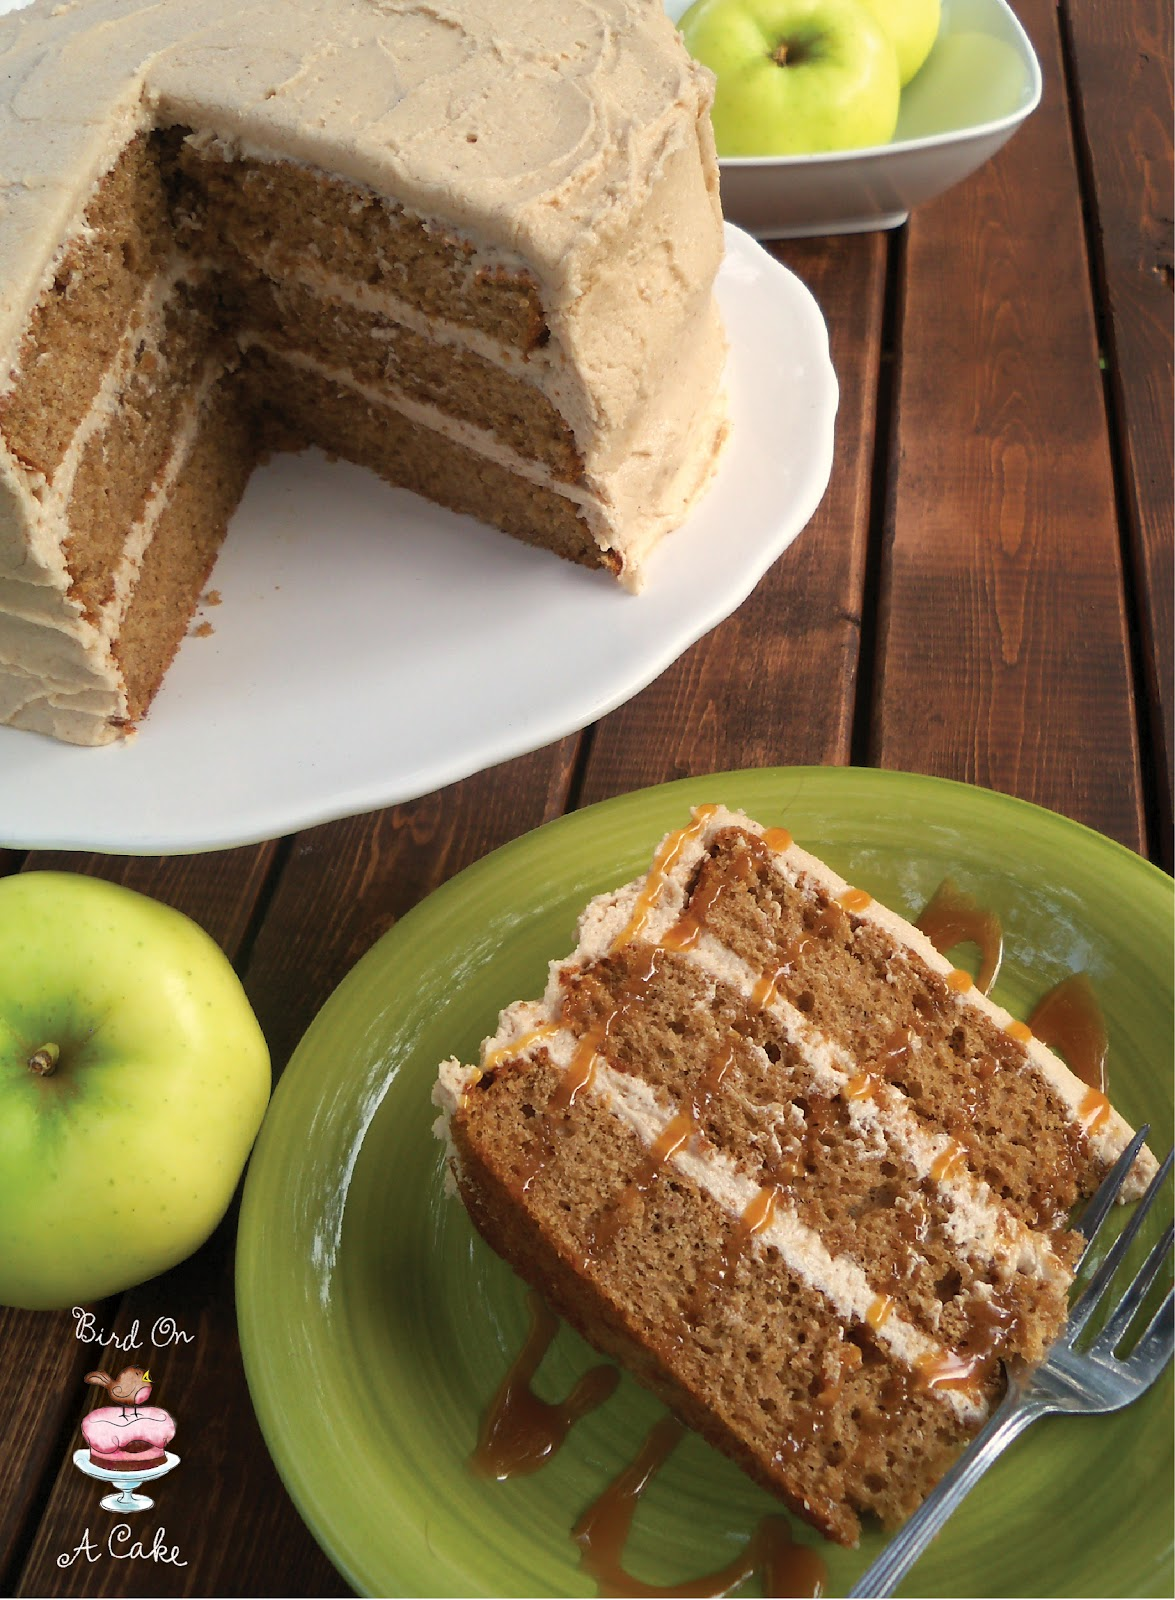 Bird On A Cake: Apple Cider Spice Cake with Apple Butter Frosting